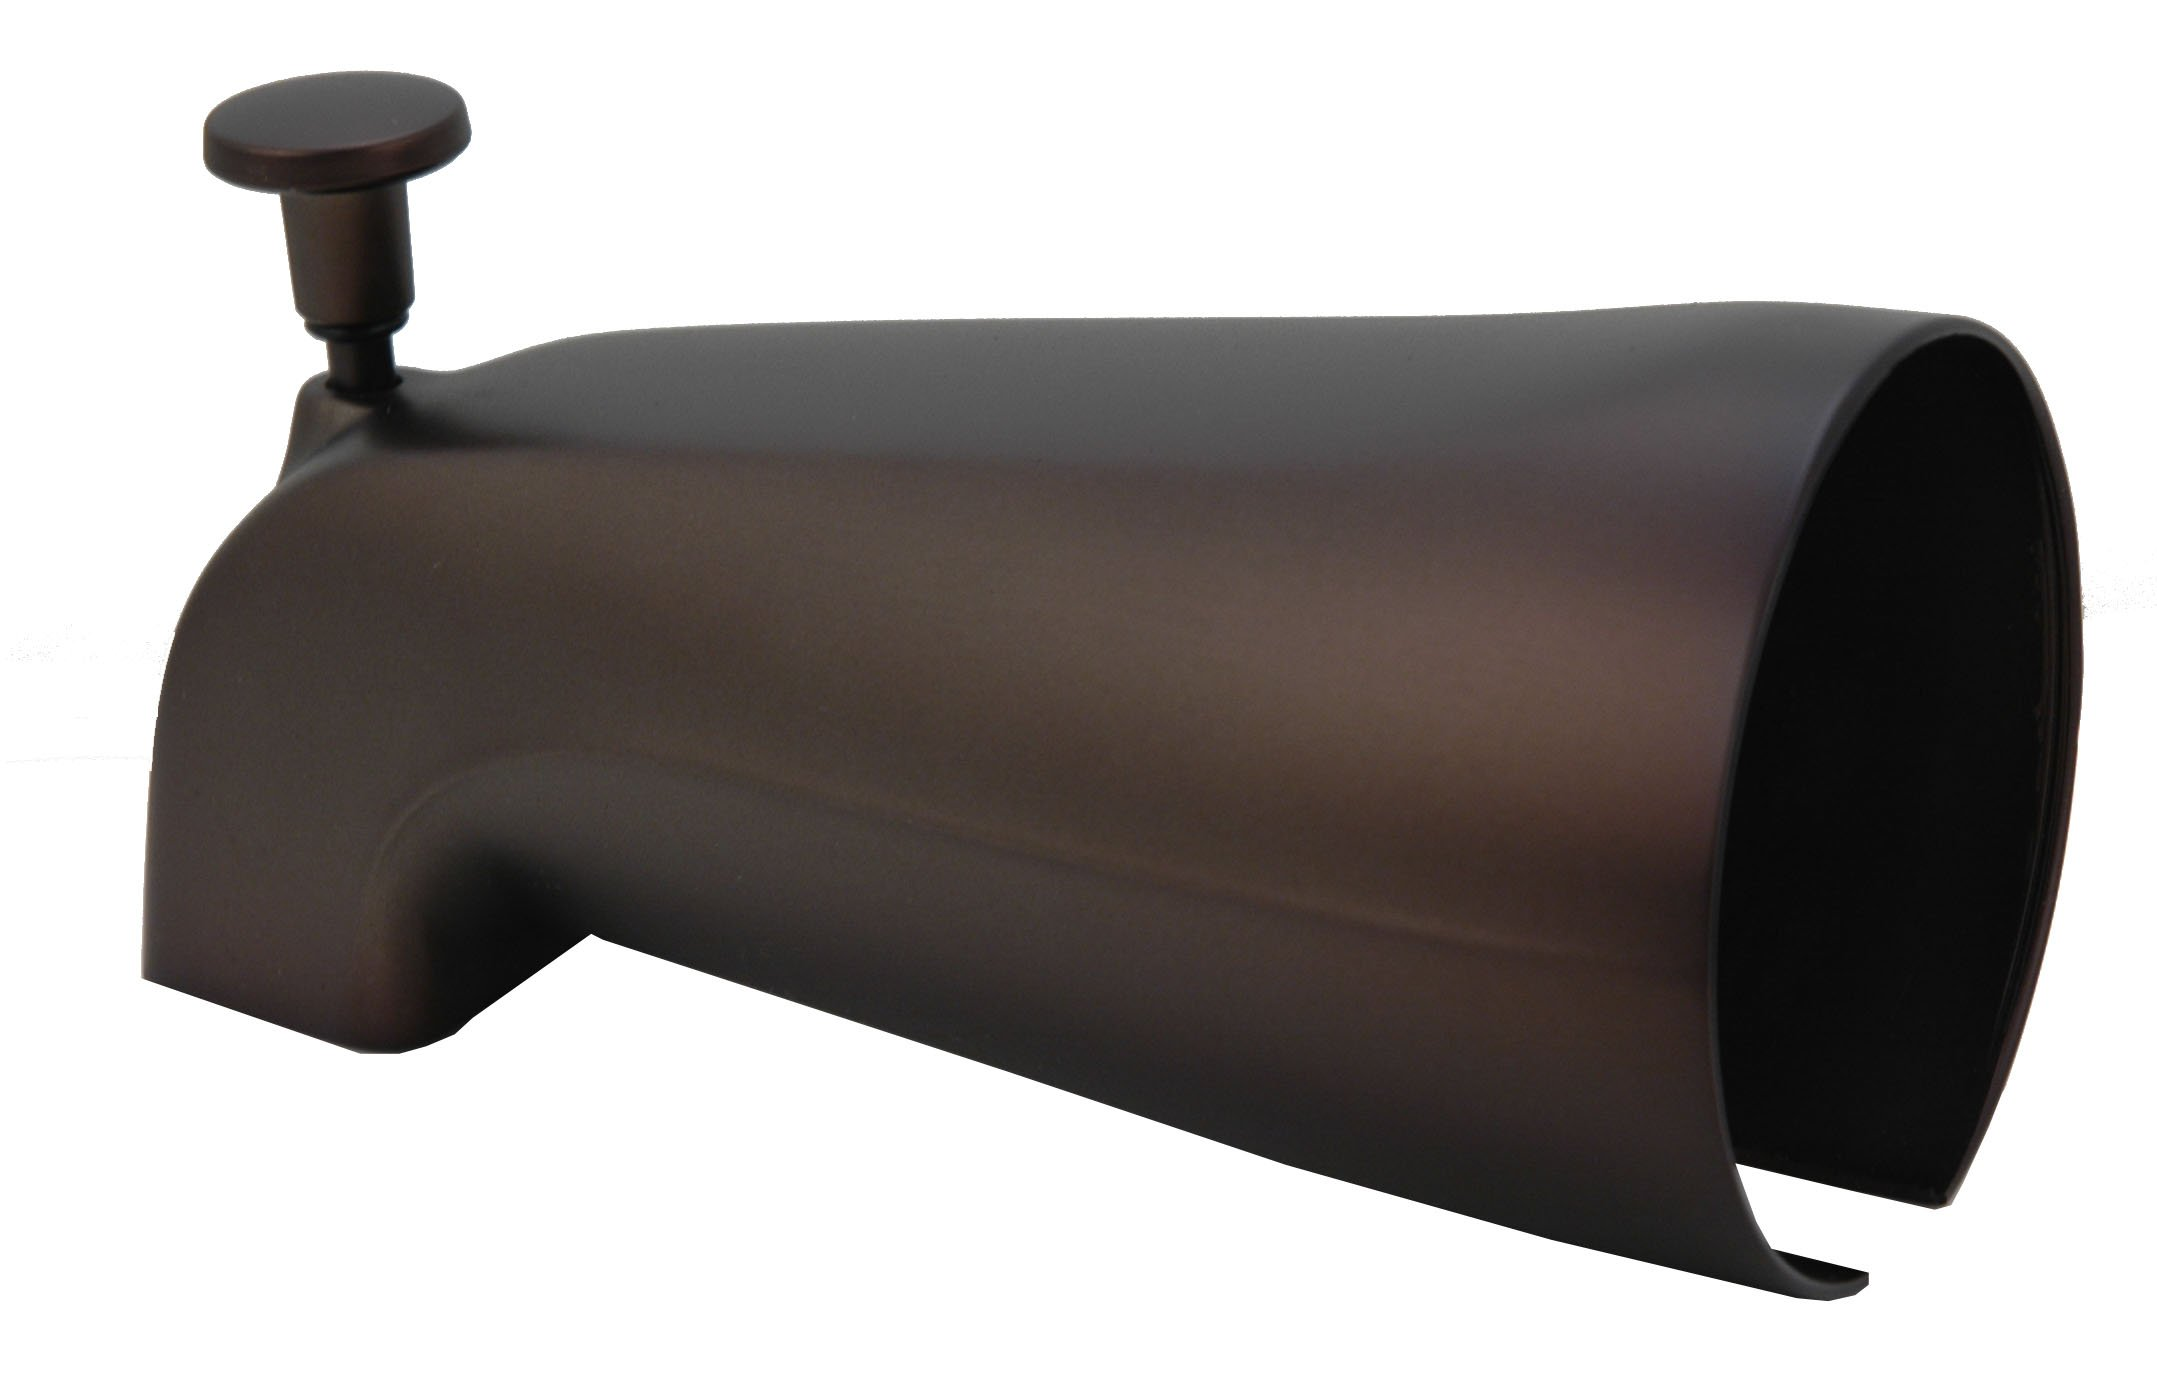 Tub Diverter Spout, Oil Rubbed Bronze Finish, by Plumb USA by PlumbUSA